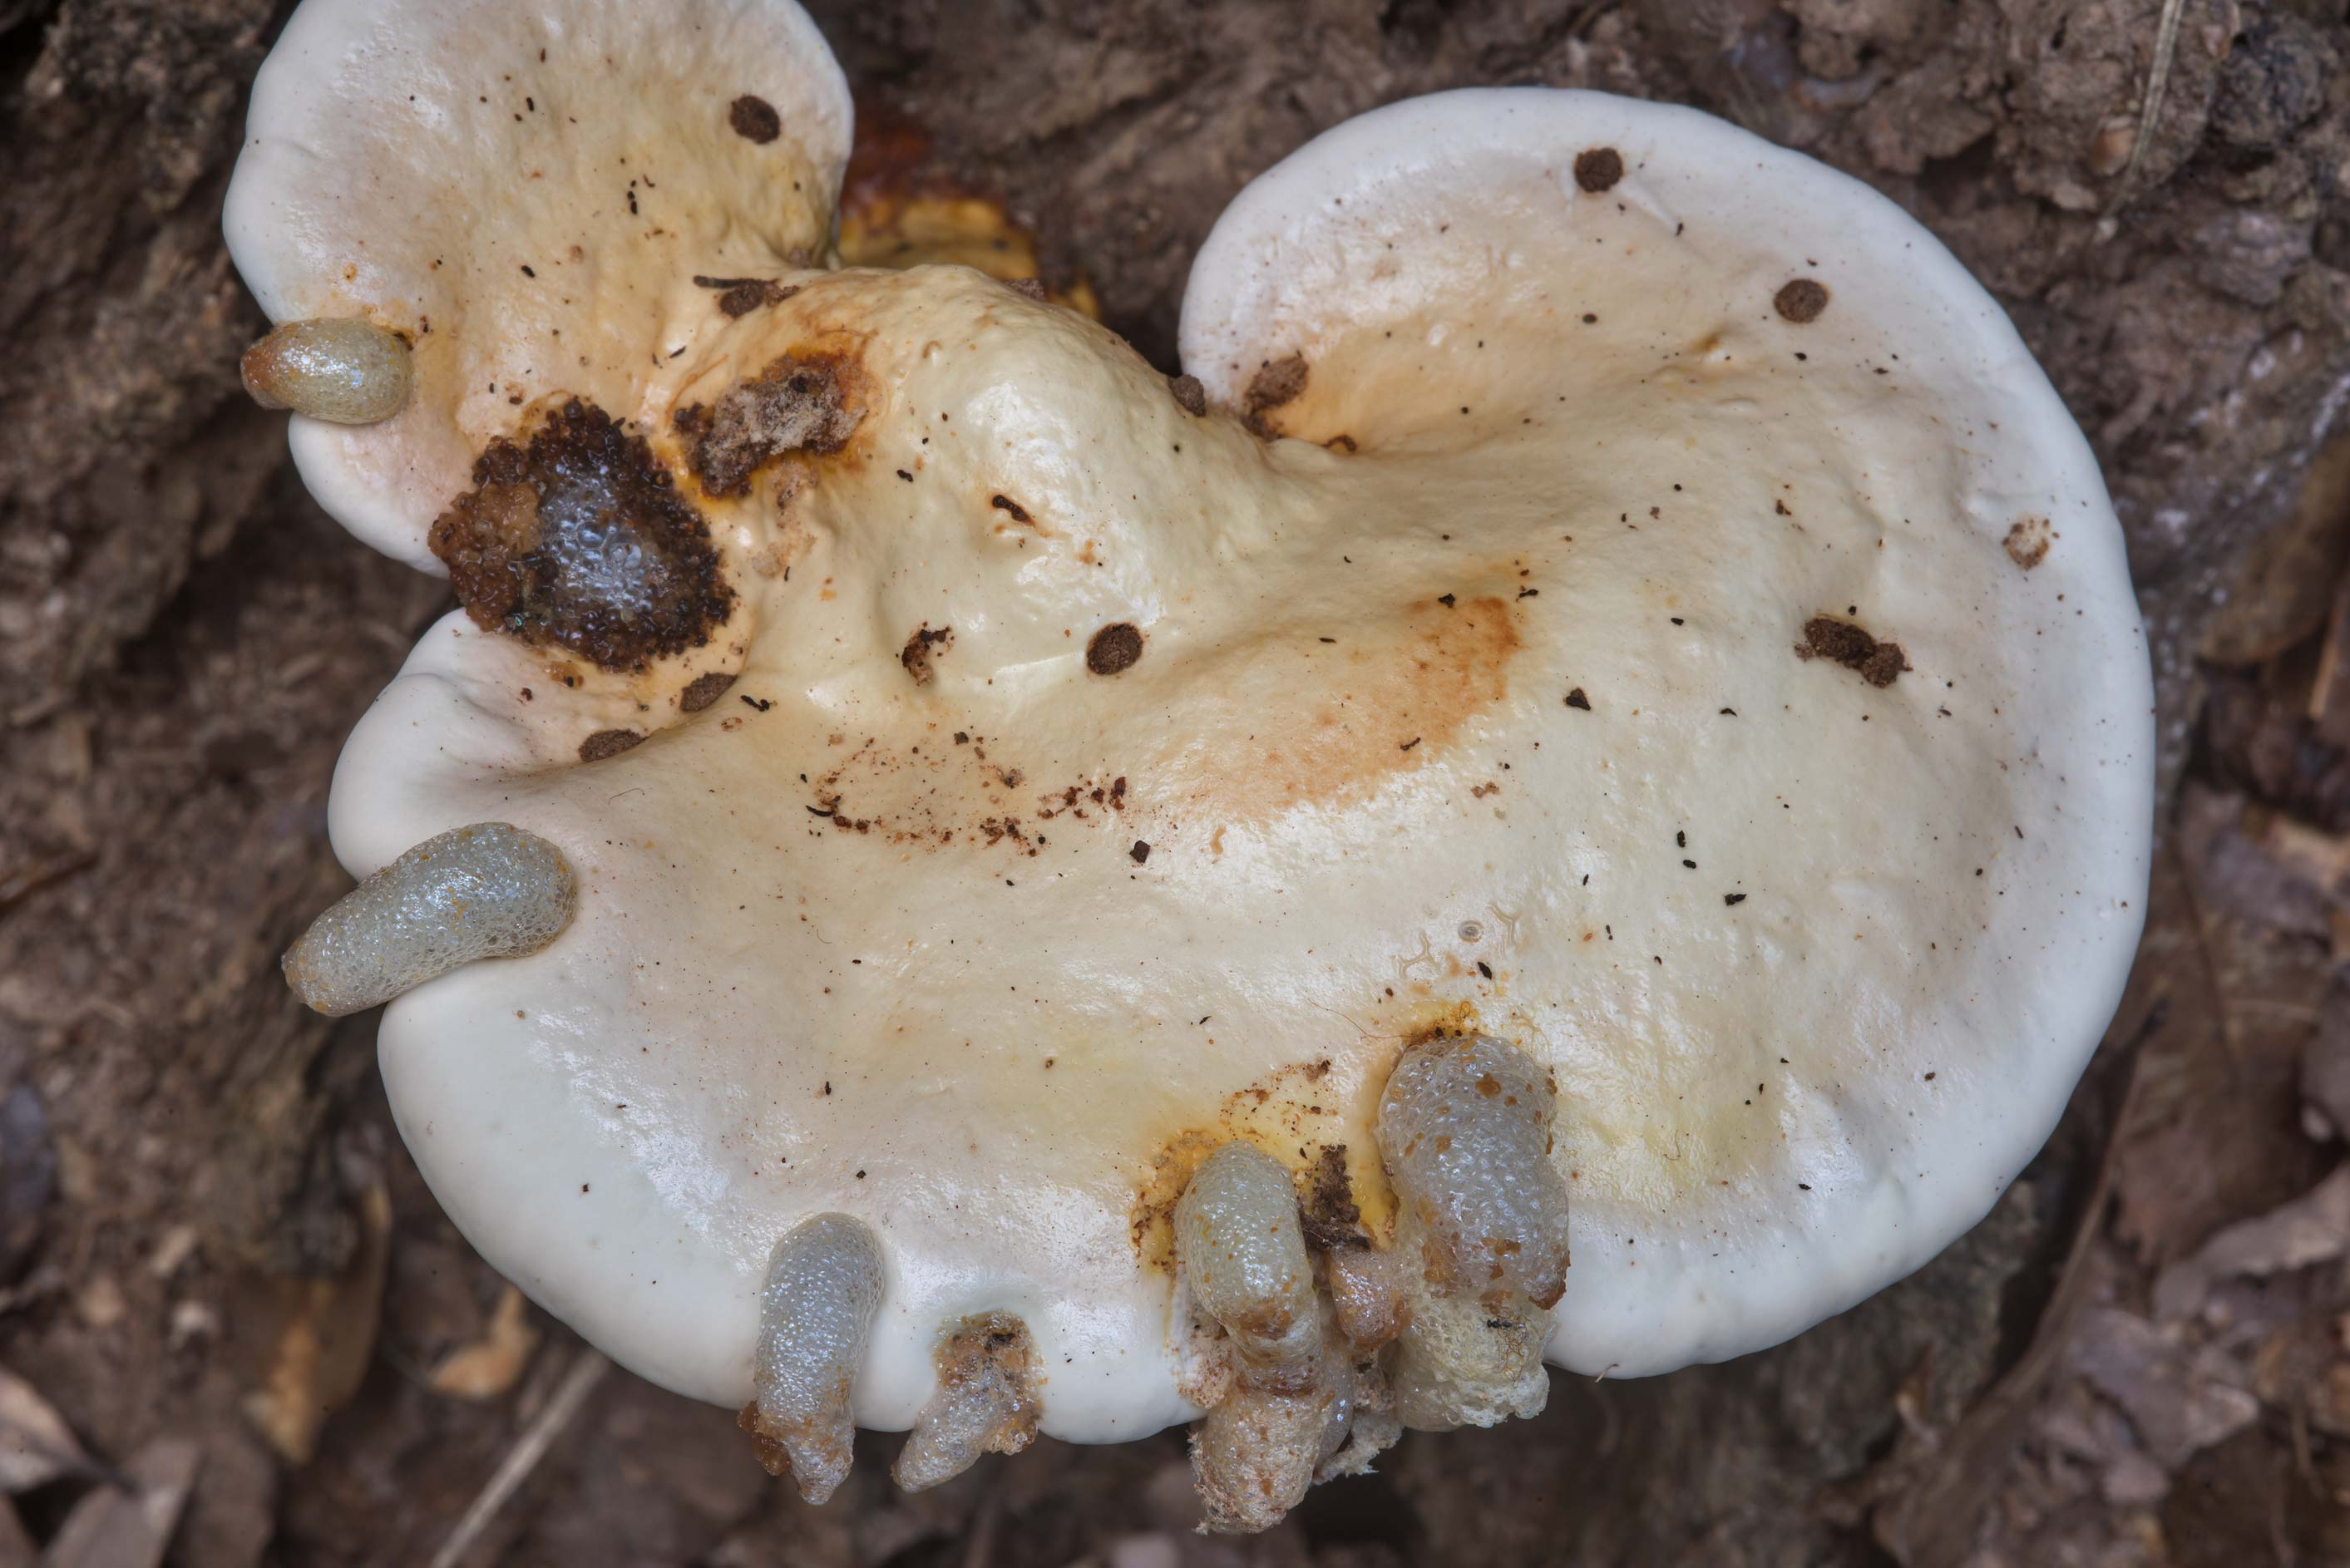 Polypore mushrooms Ganoderma curtisii growing at...Creek Park. College Station, Texas